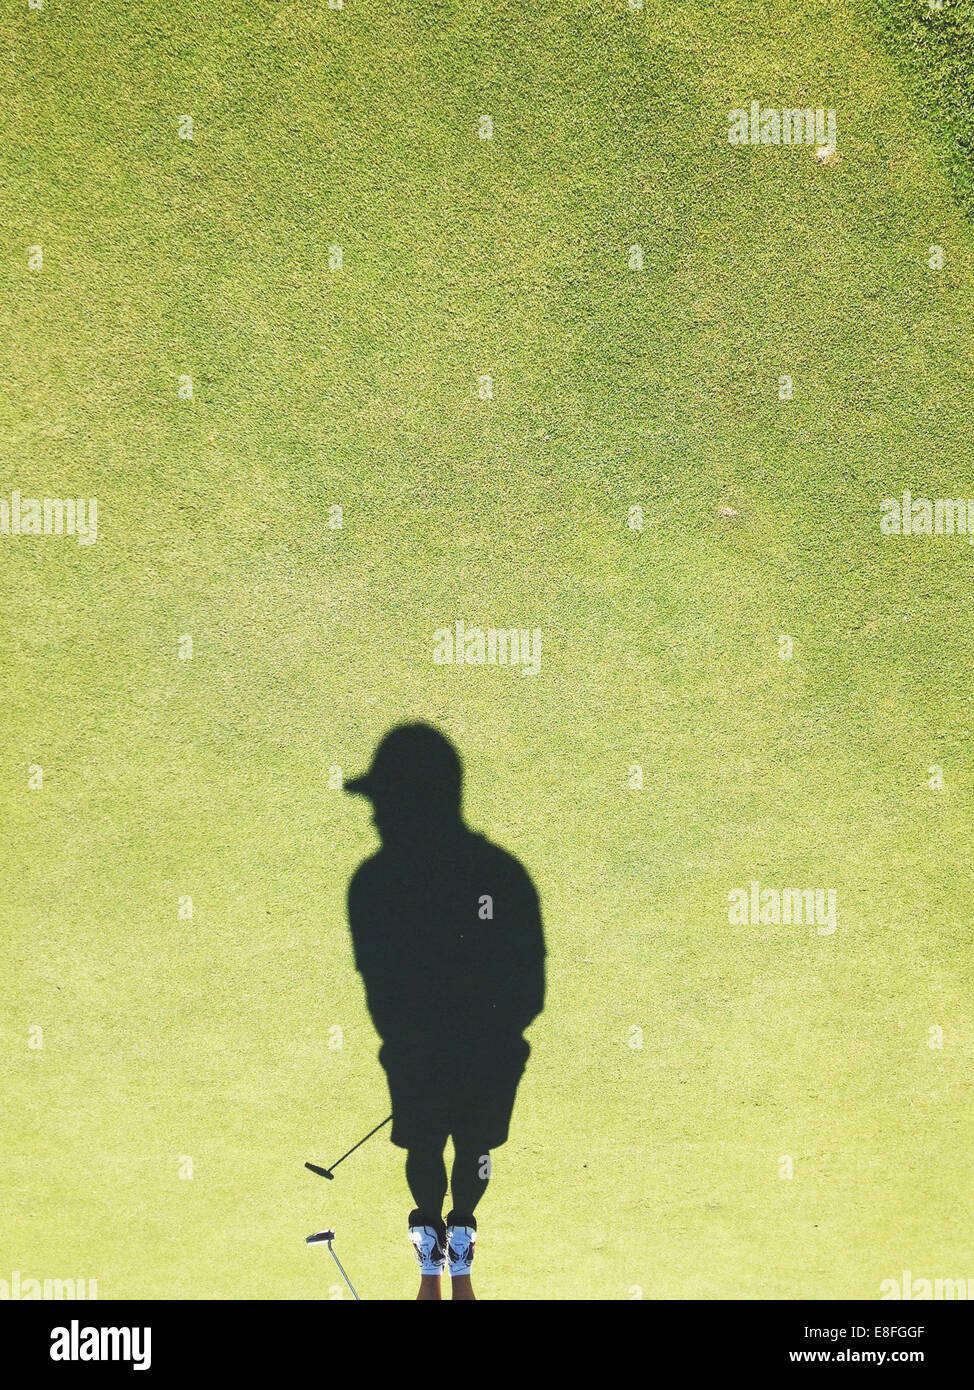 Shadow of man playing golf - Stock Image